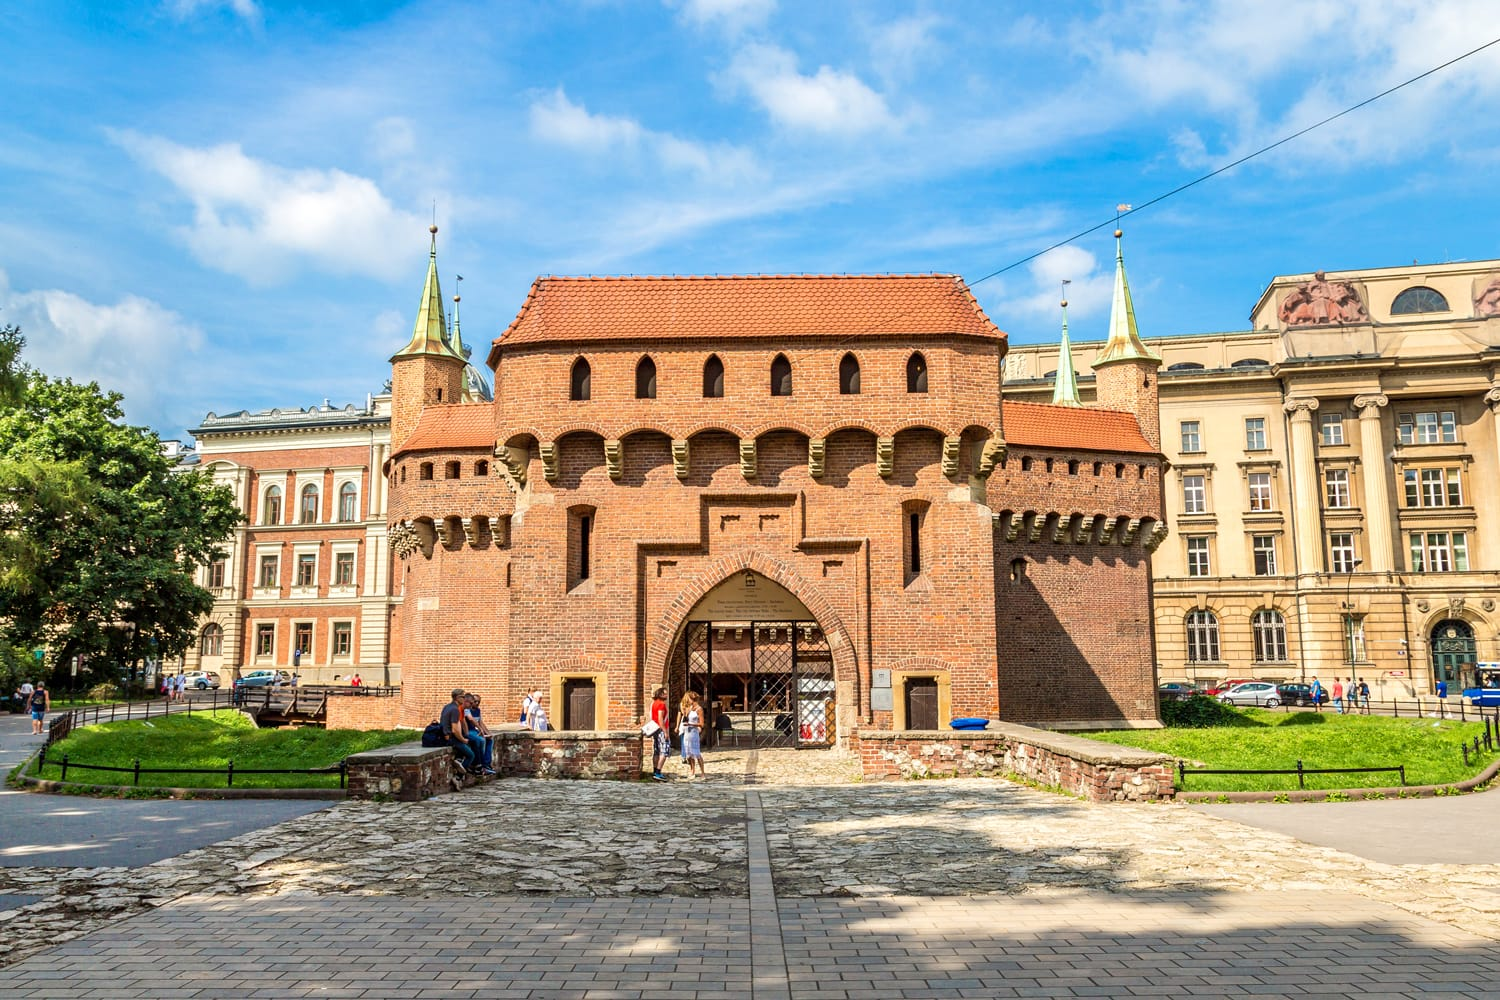 Barbican in a historical part of Krakow, Poland